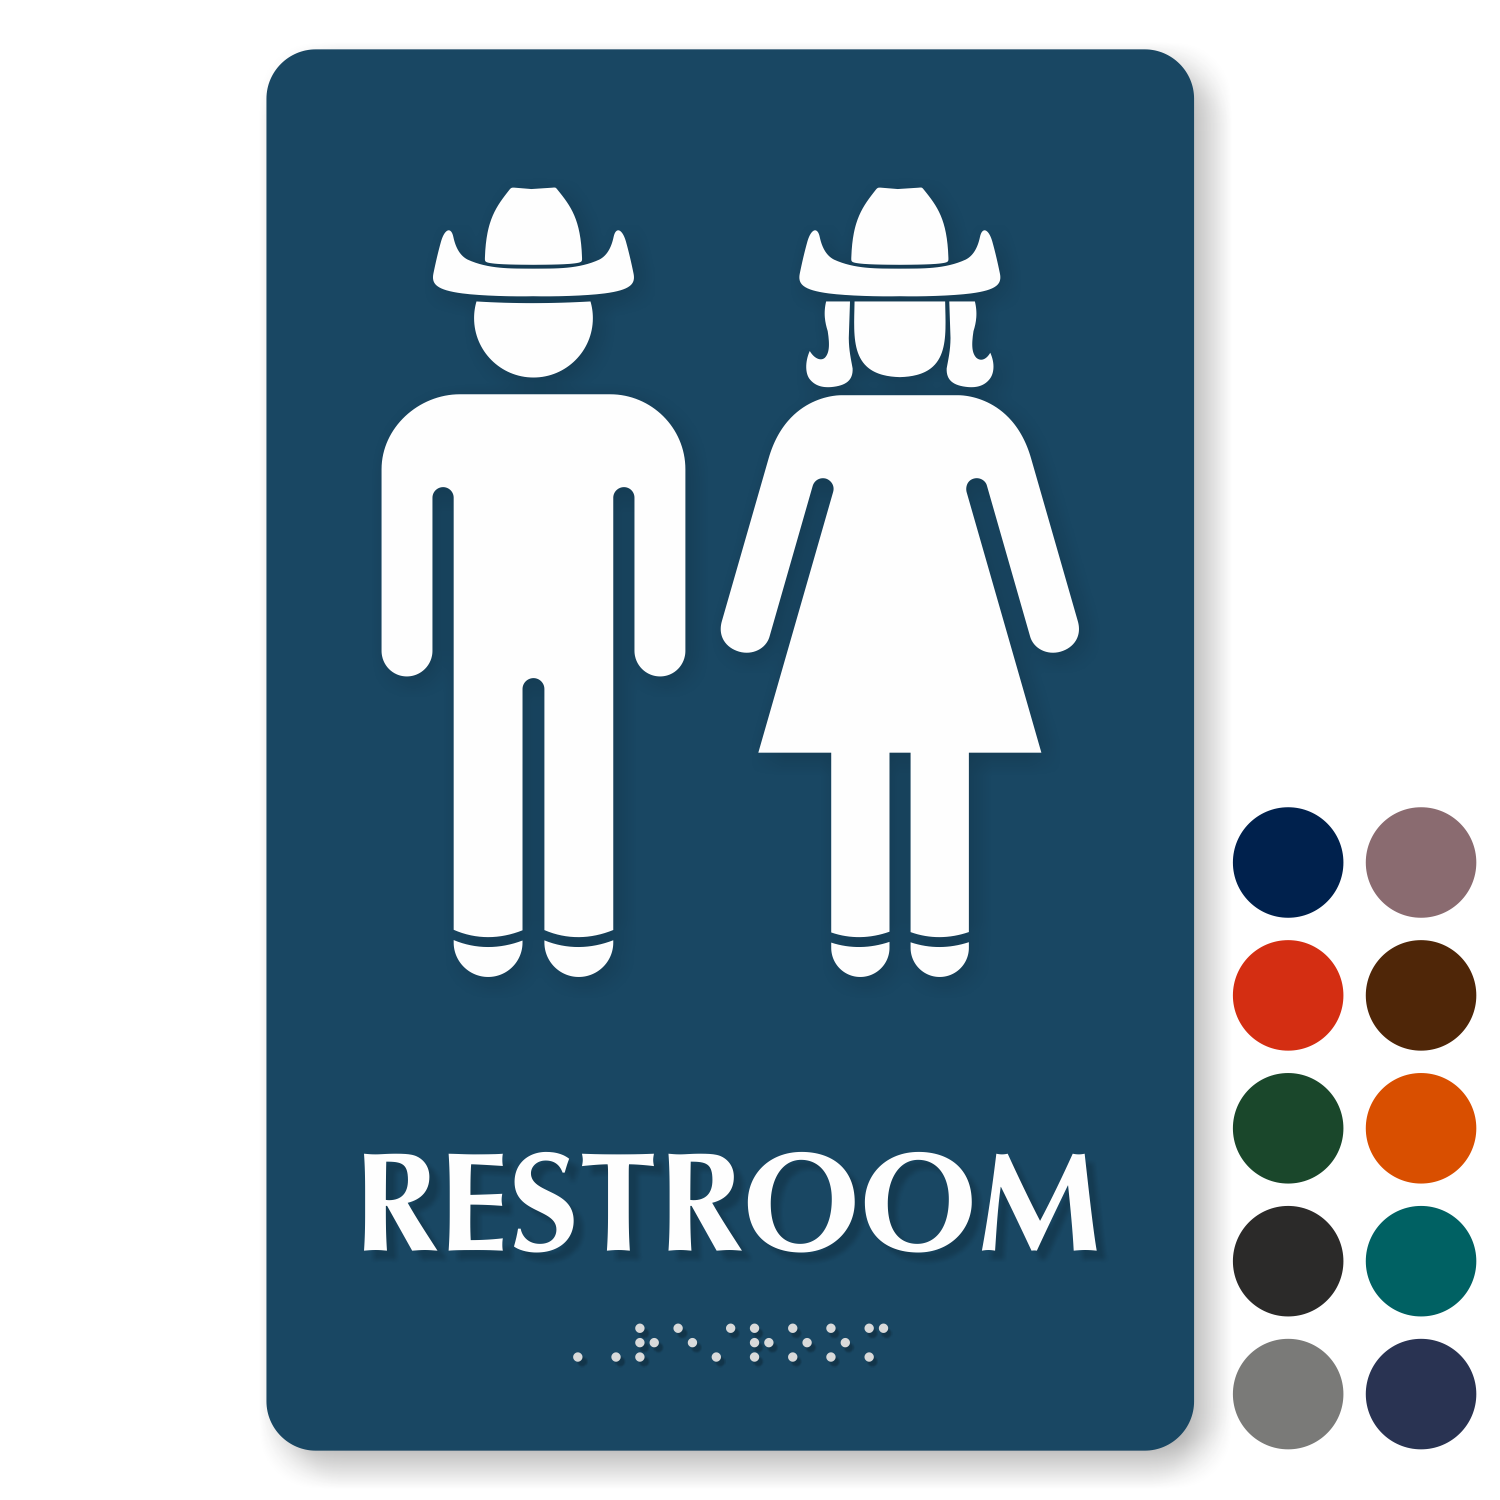 Bathroom signs